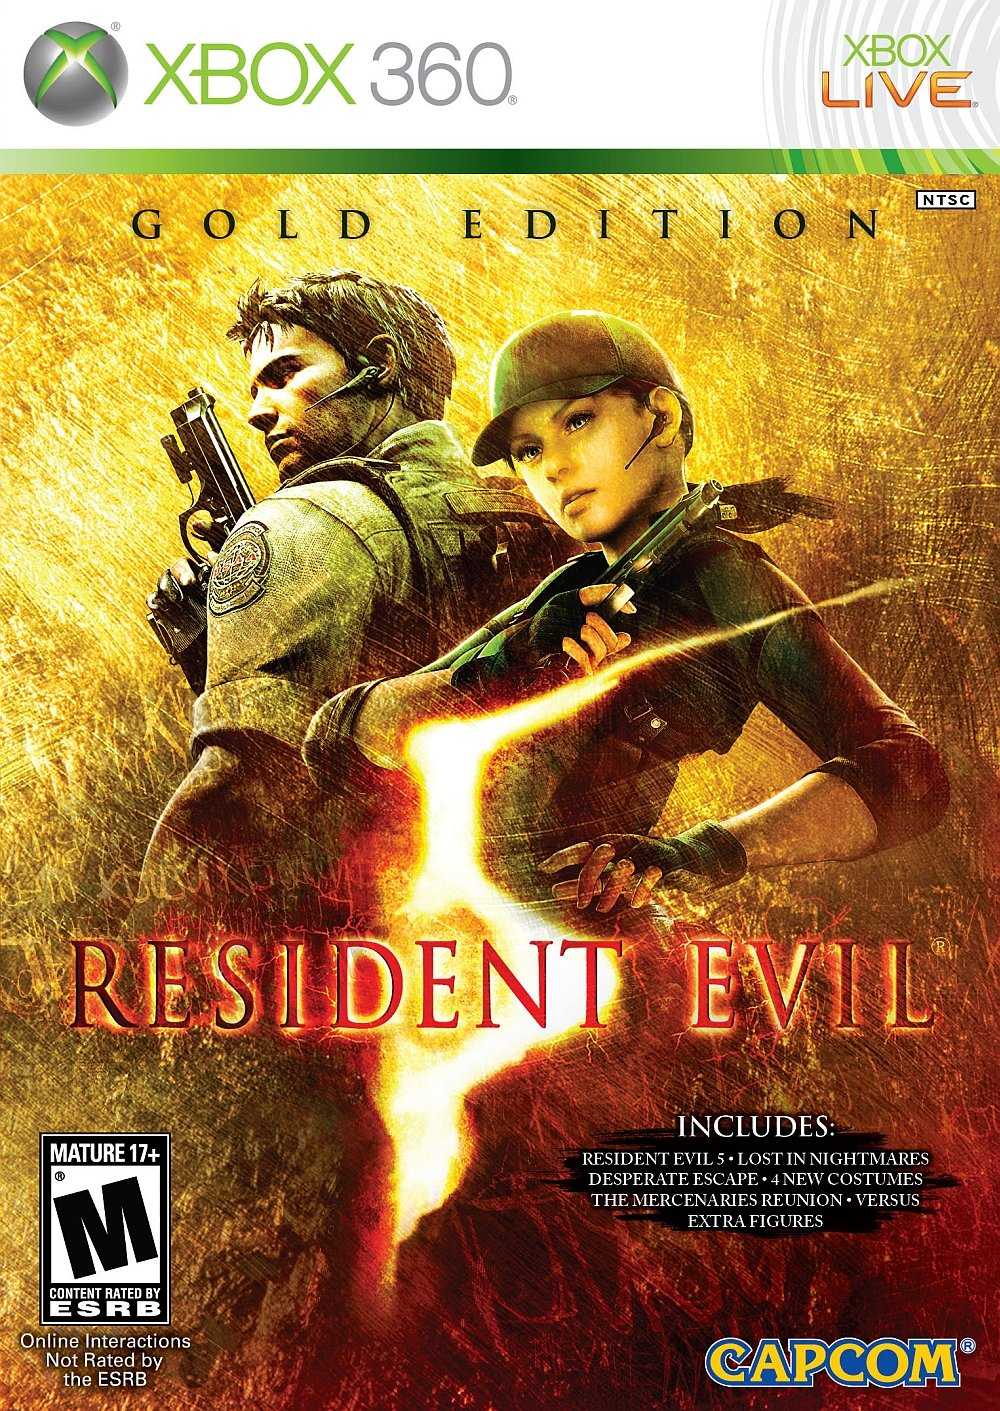 Amazon Com Resident Evil 5 Gold Edition Xbox 360 Capcom U S A Inc Video Games